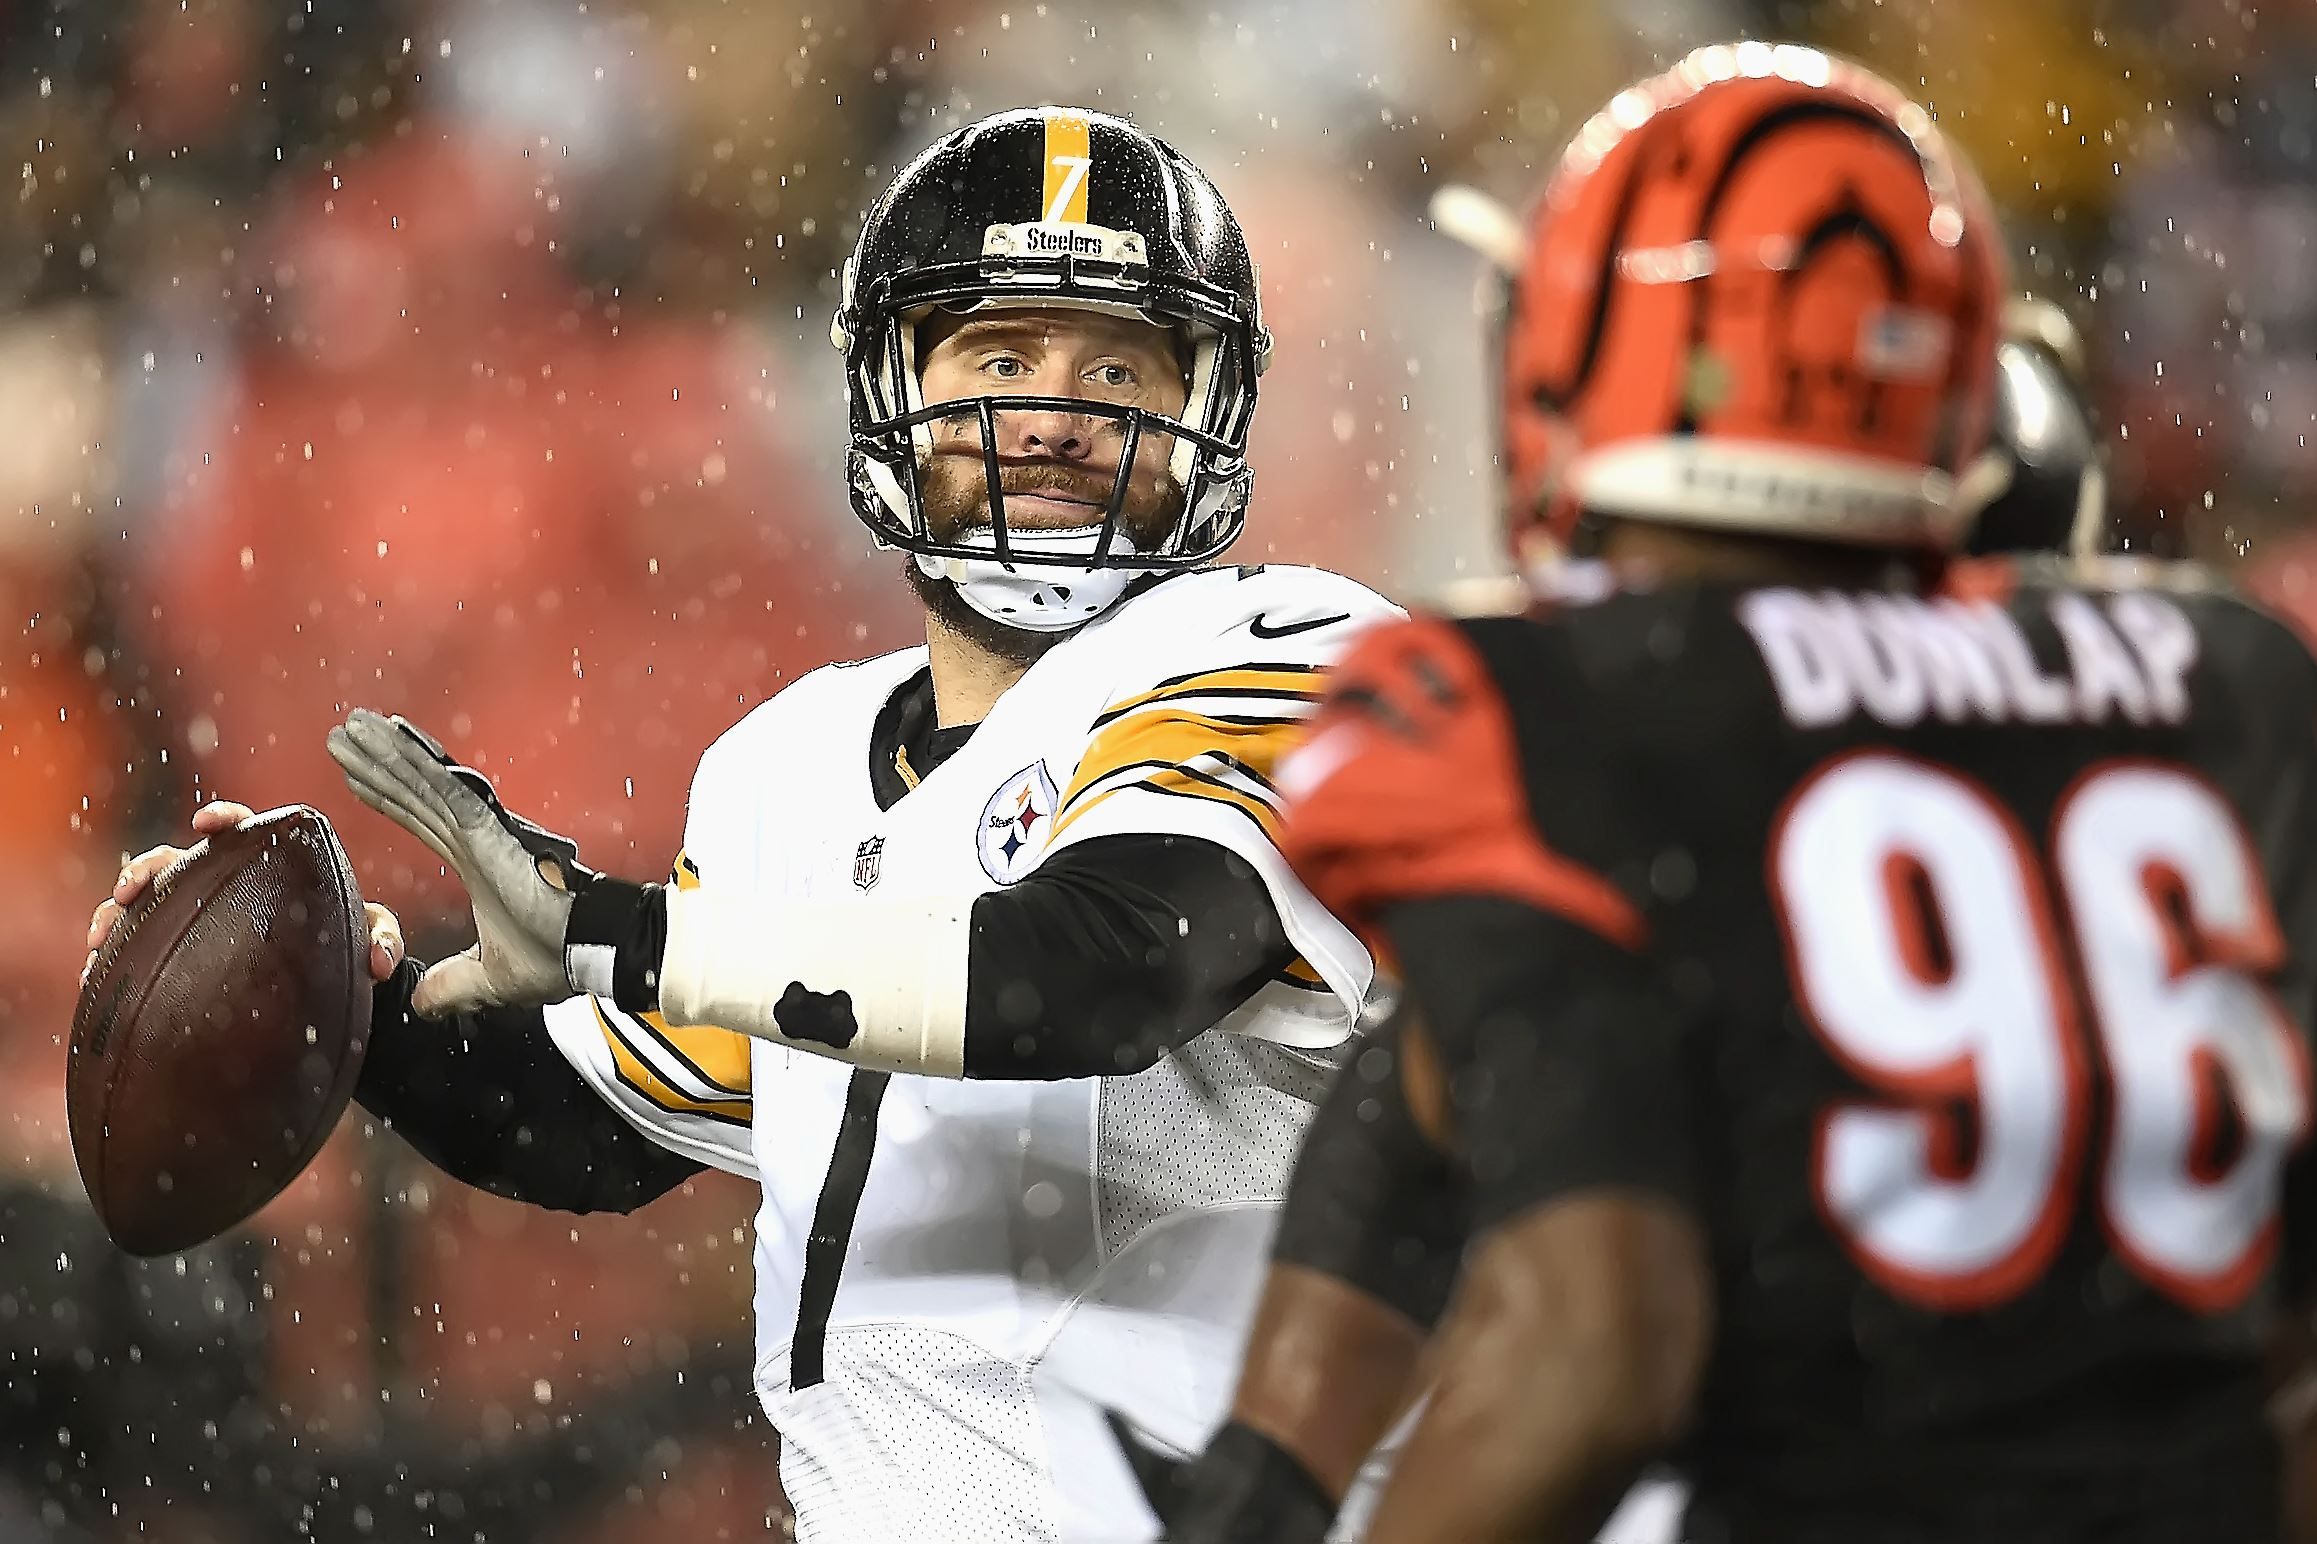 Steelers offense could be 'dangerous,' and Roethlisberger's arm feels as strong as ever